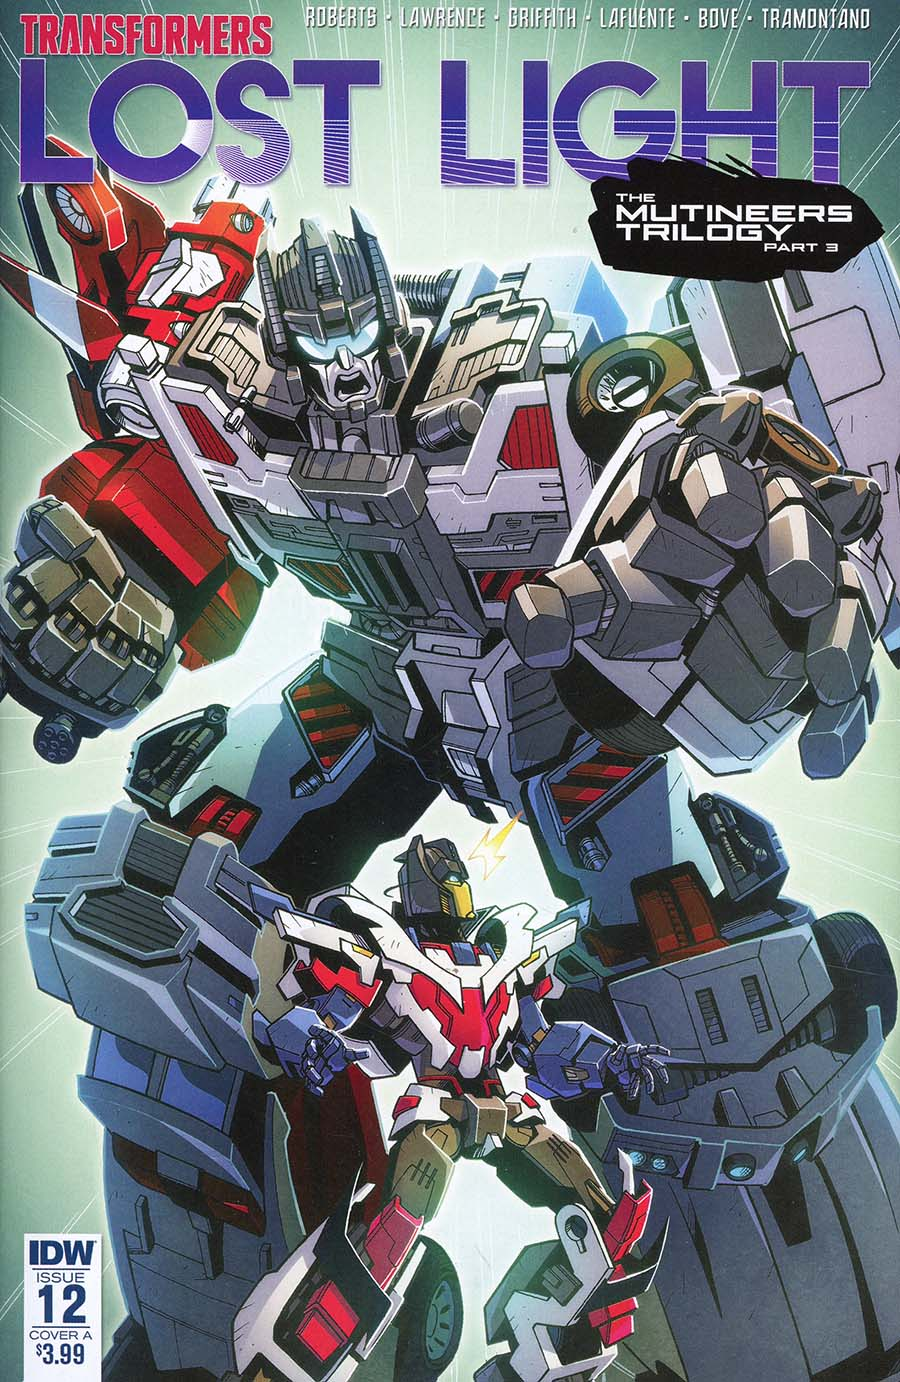 Transformers Lost Light #12 Cover A Regular Jack Lawrence Cover